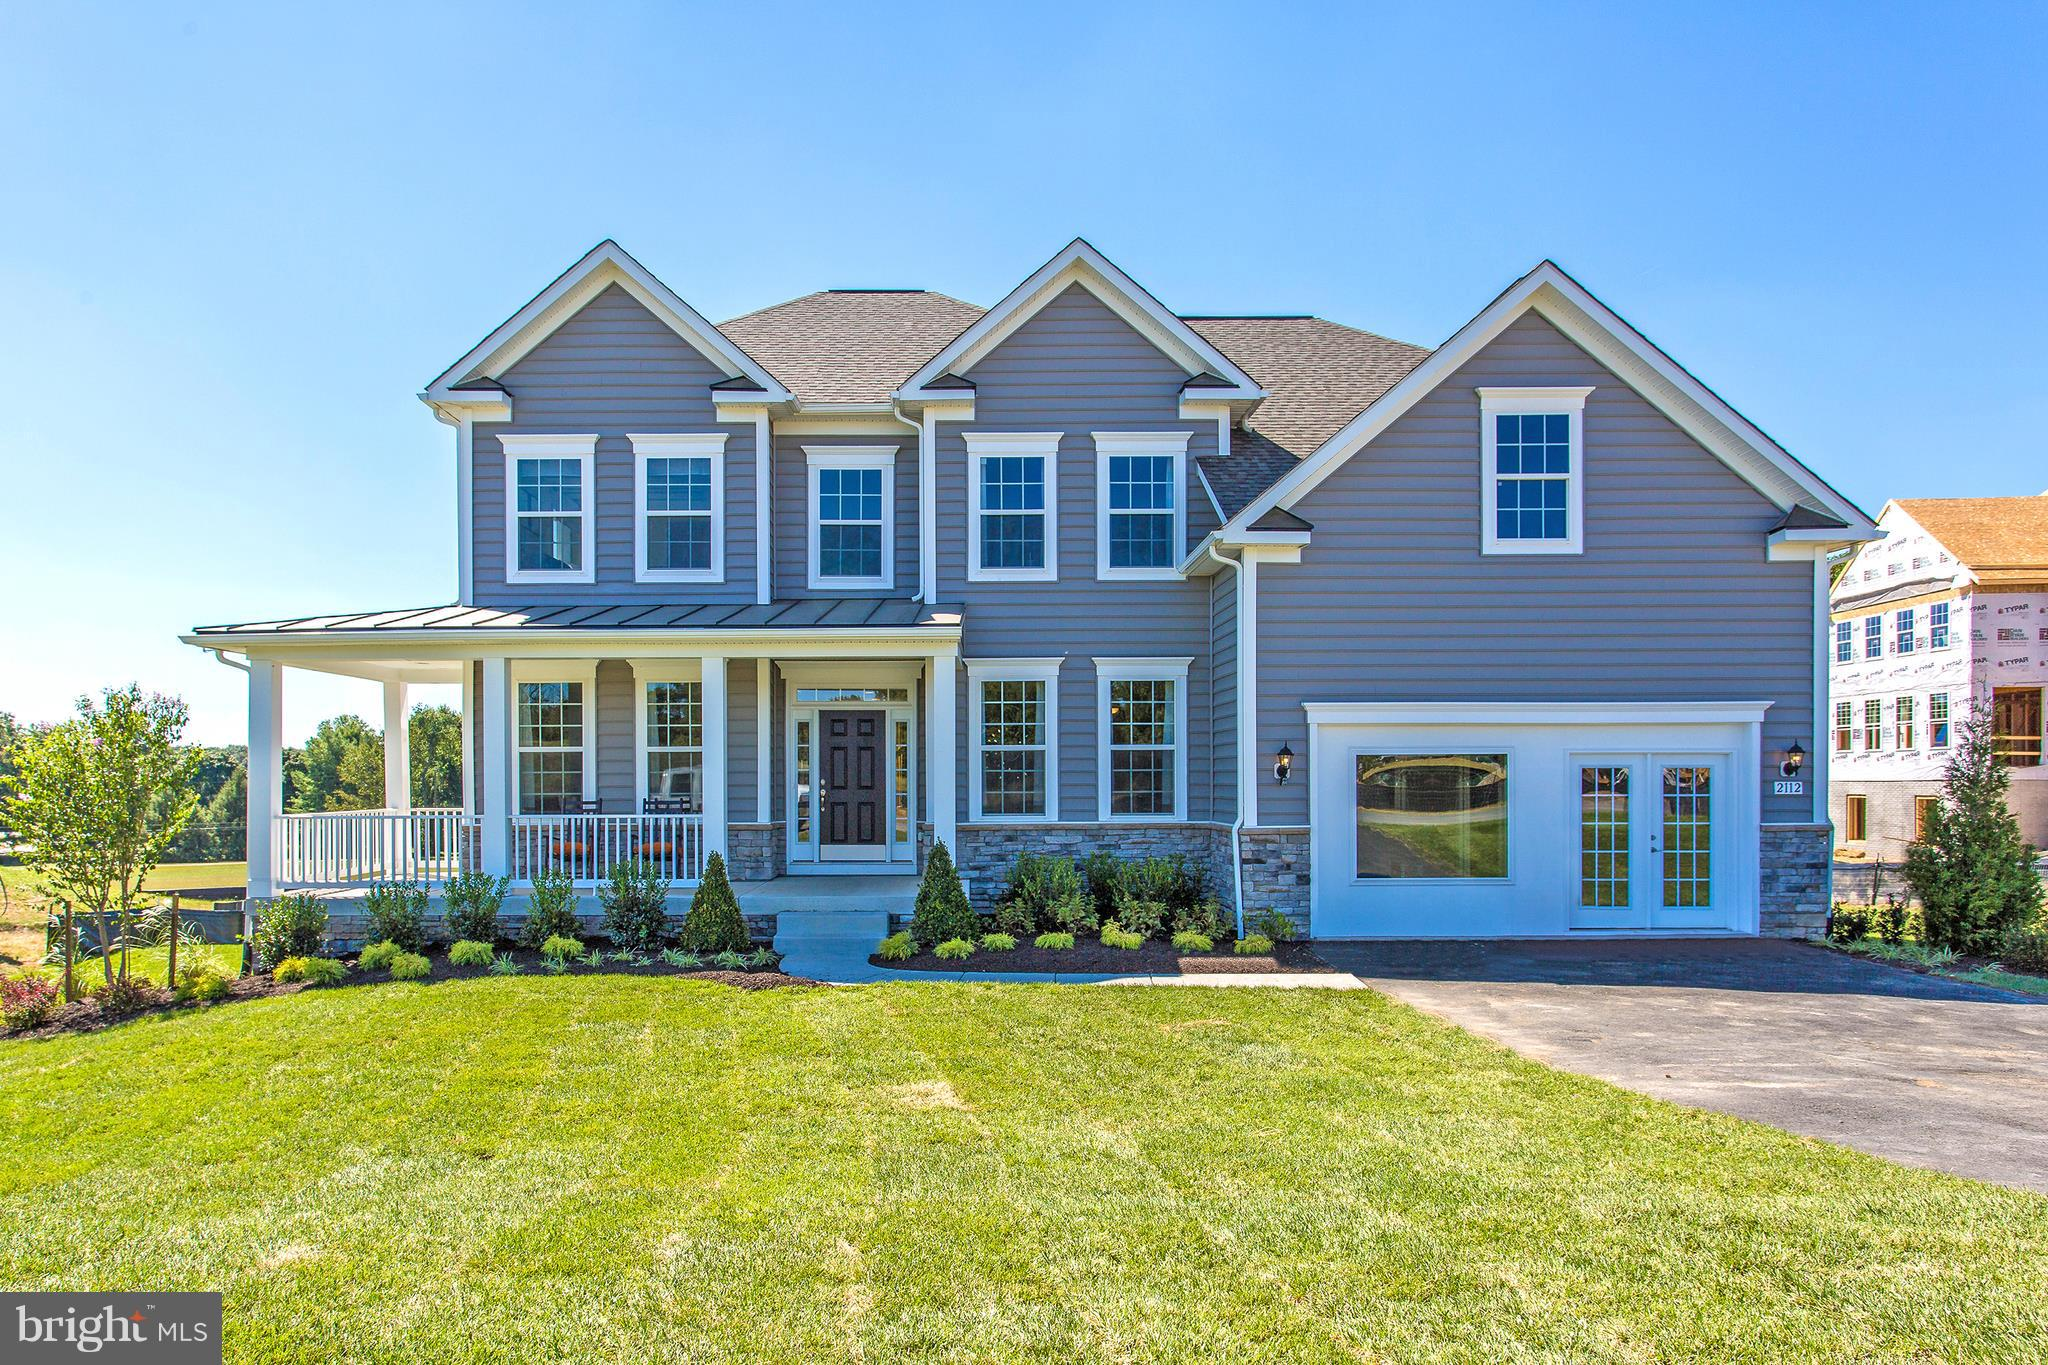 2112 GABLE DRIVE, JESSUP, MD 20794